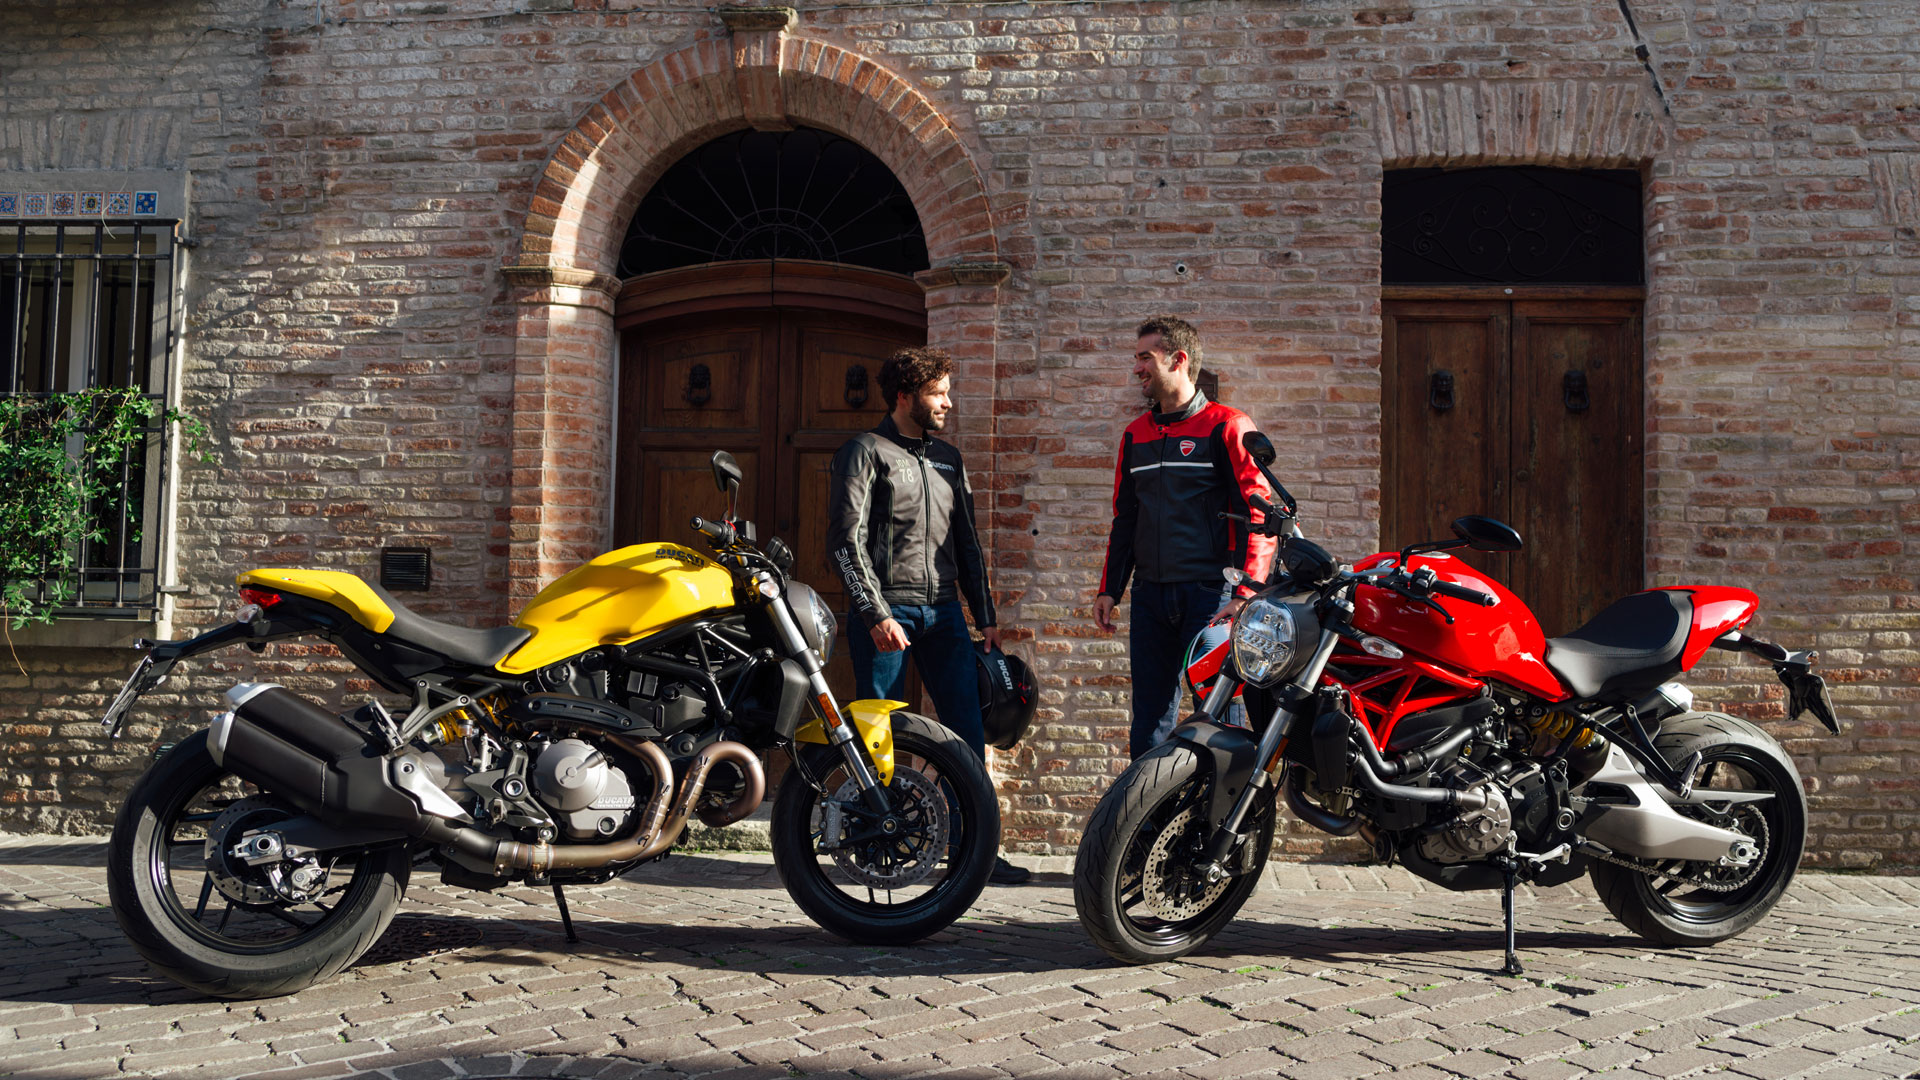 Monster-821-MY18-Yellow-Red-07-Slider-Gallery-1920x1080 Ducati Monster 821 Stealth - perfect pentru toata lumea !